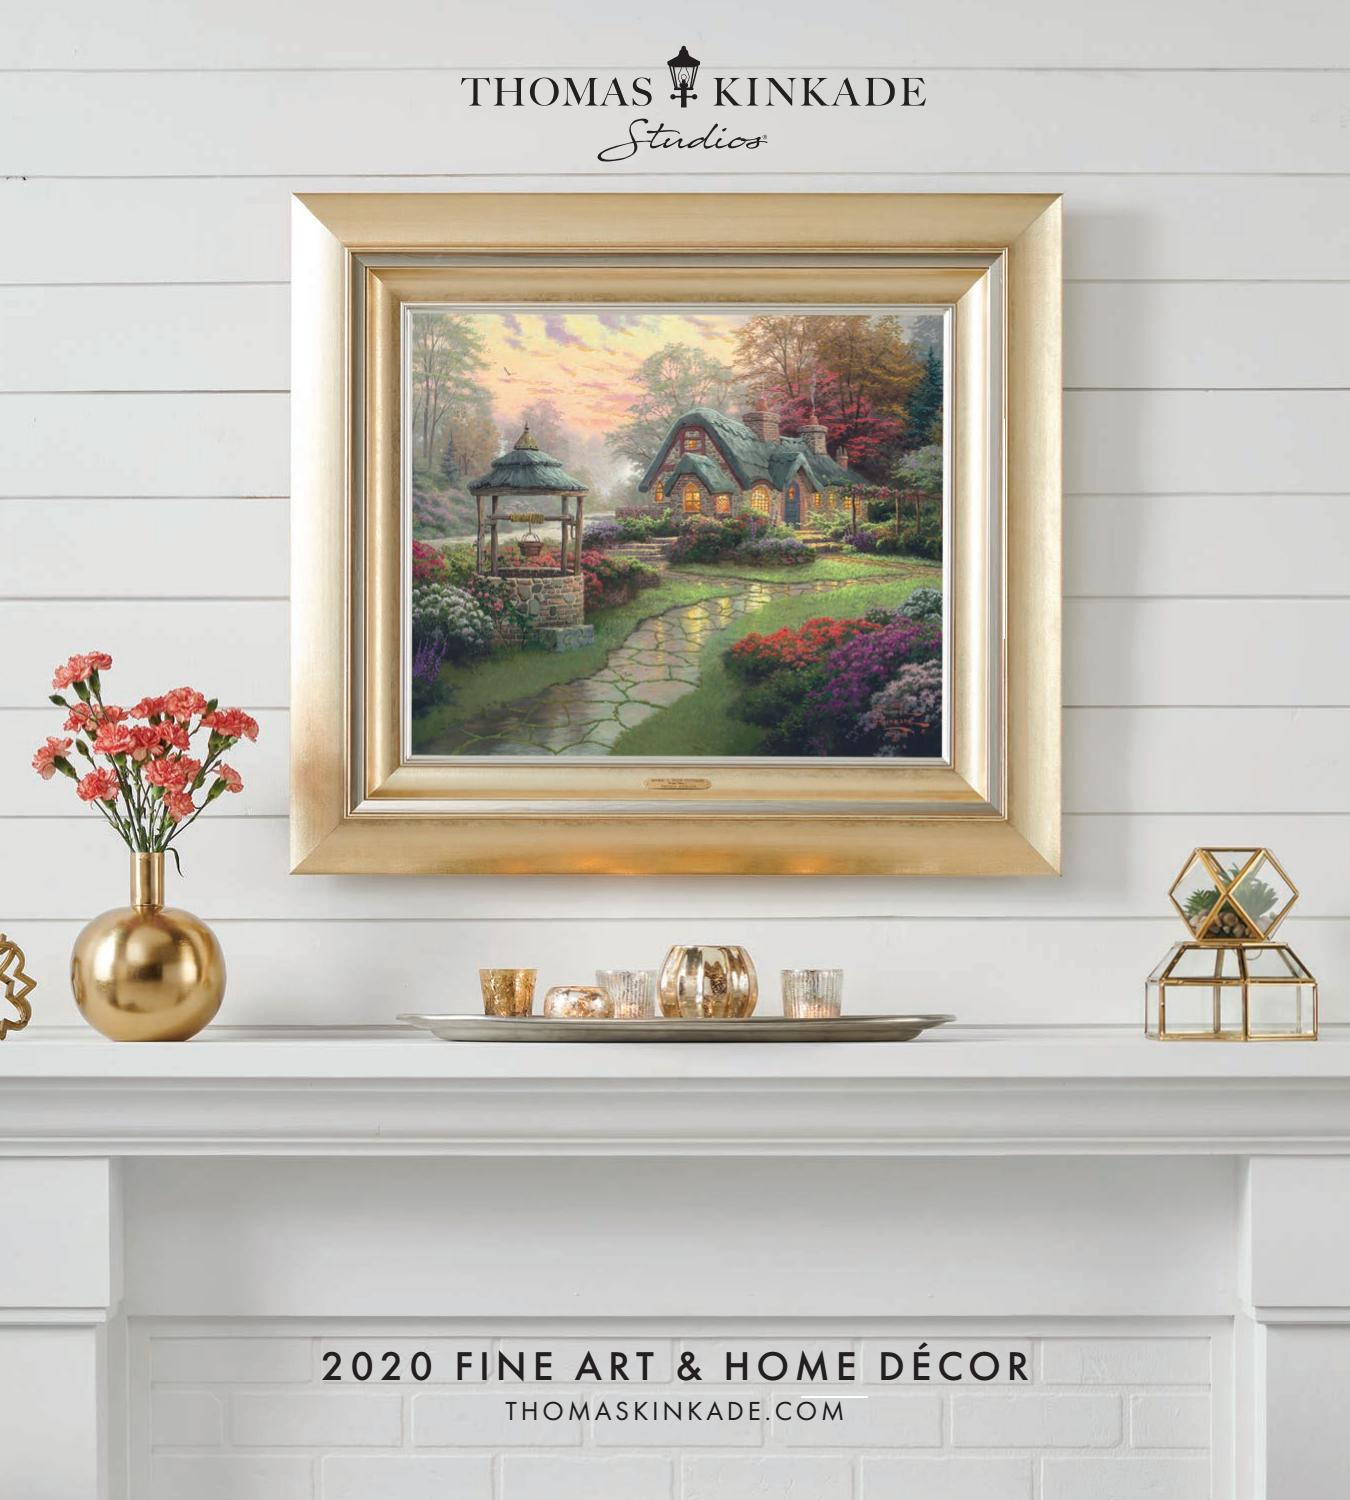 Set of 2 Thomas Kinkade Cottages 14 x 14 Gallery Wrapped Canvas